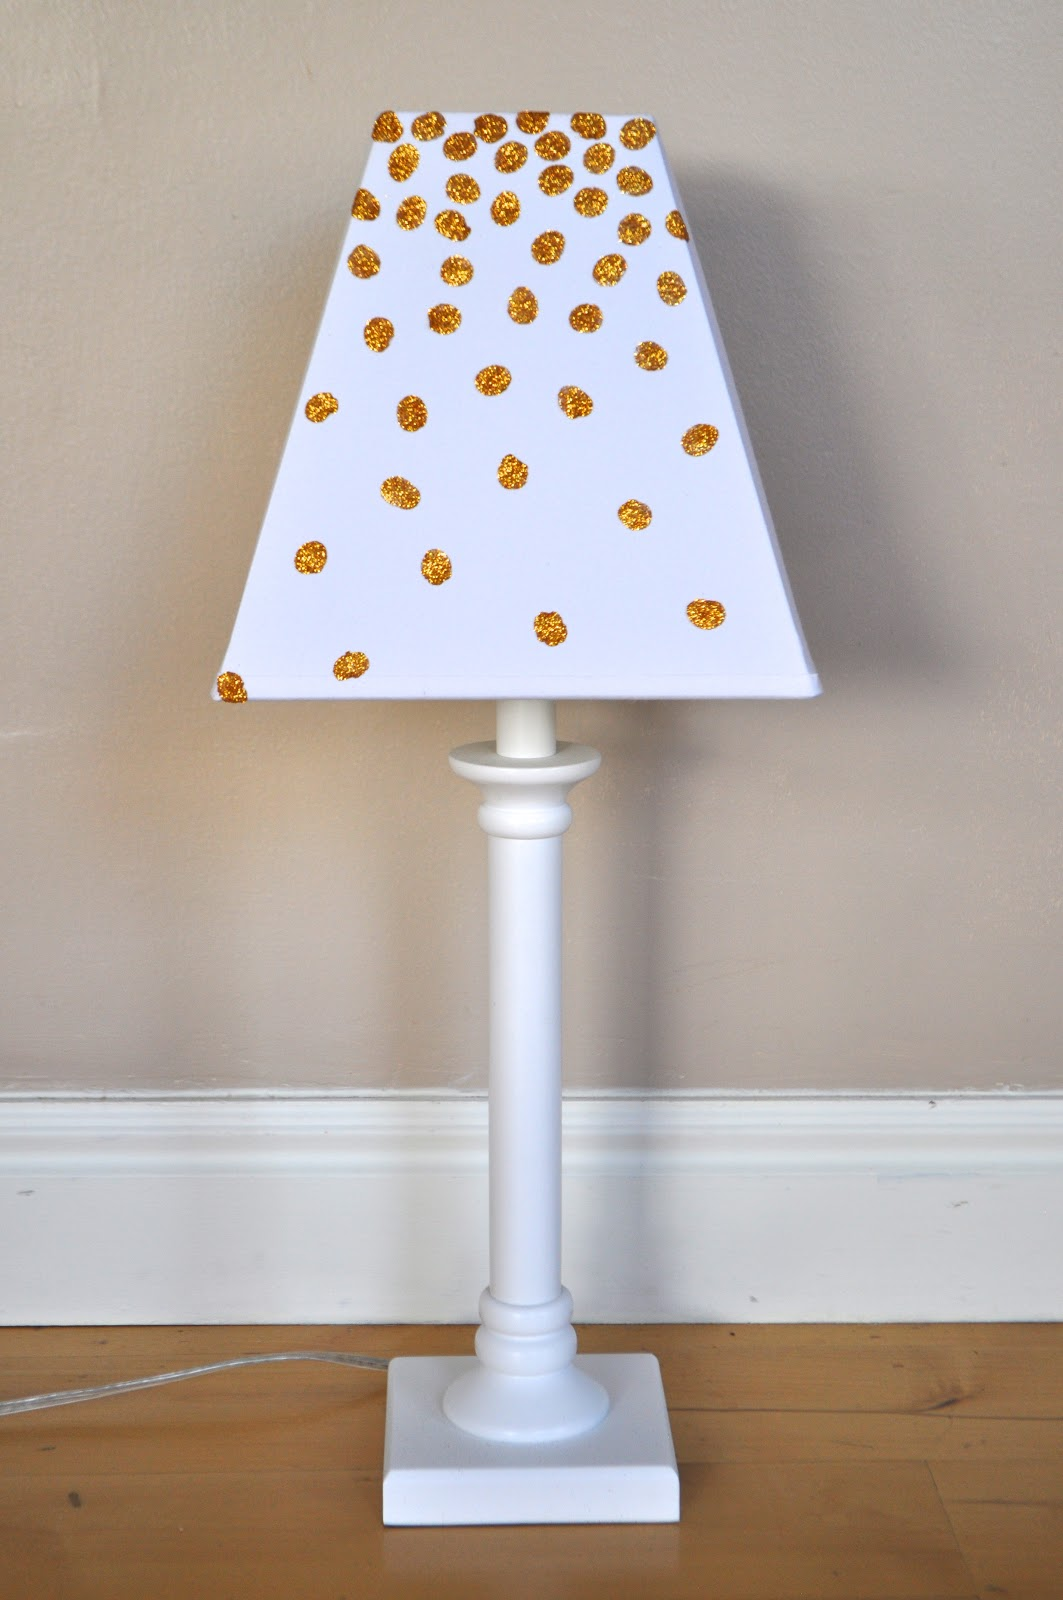 I am momma hear me roar polkadot glittered lamp shade i made sure to clean off the shade well first it was a bit dusty and the dust would also have ruined the project making the dots fall off aloadofball